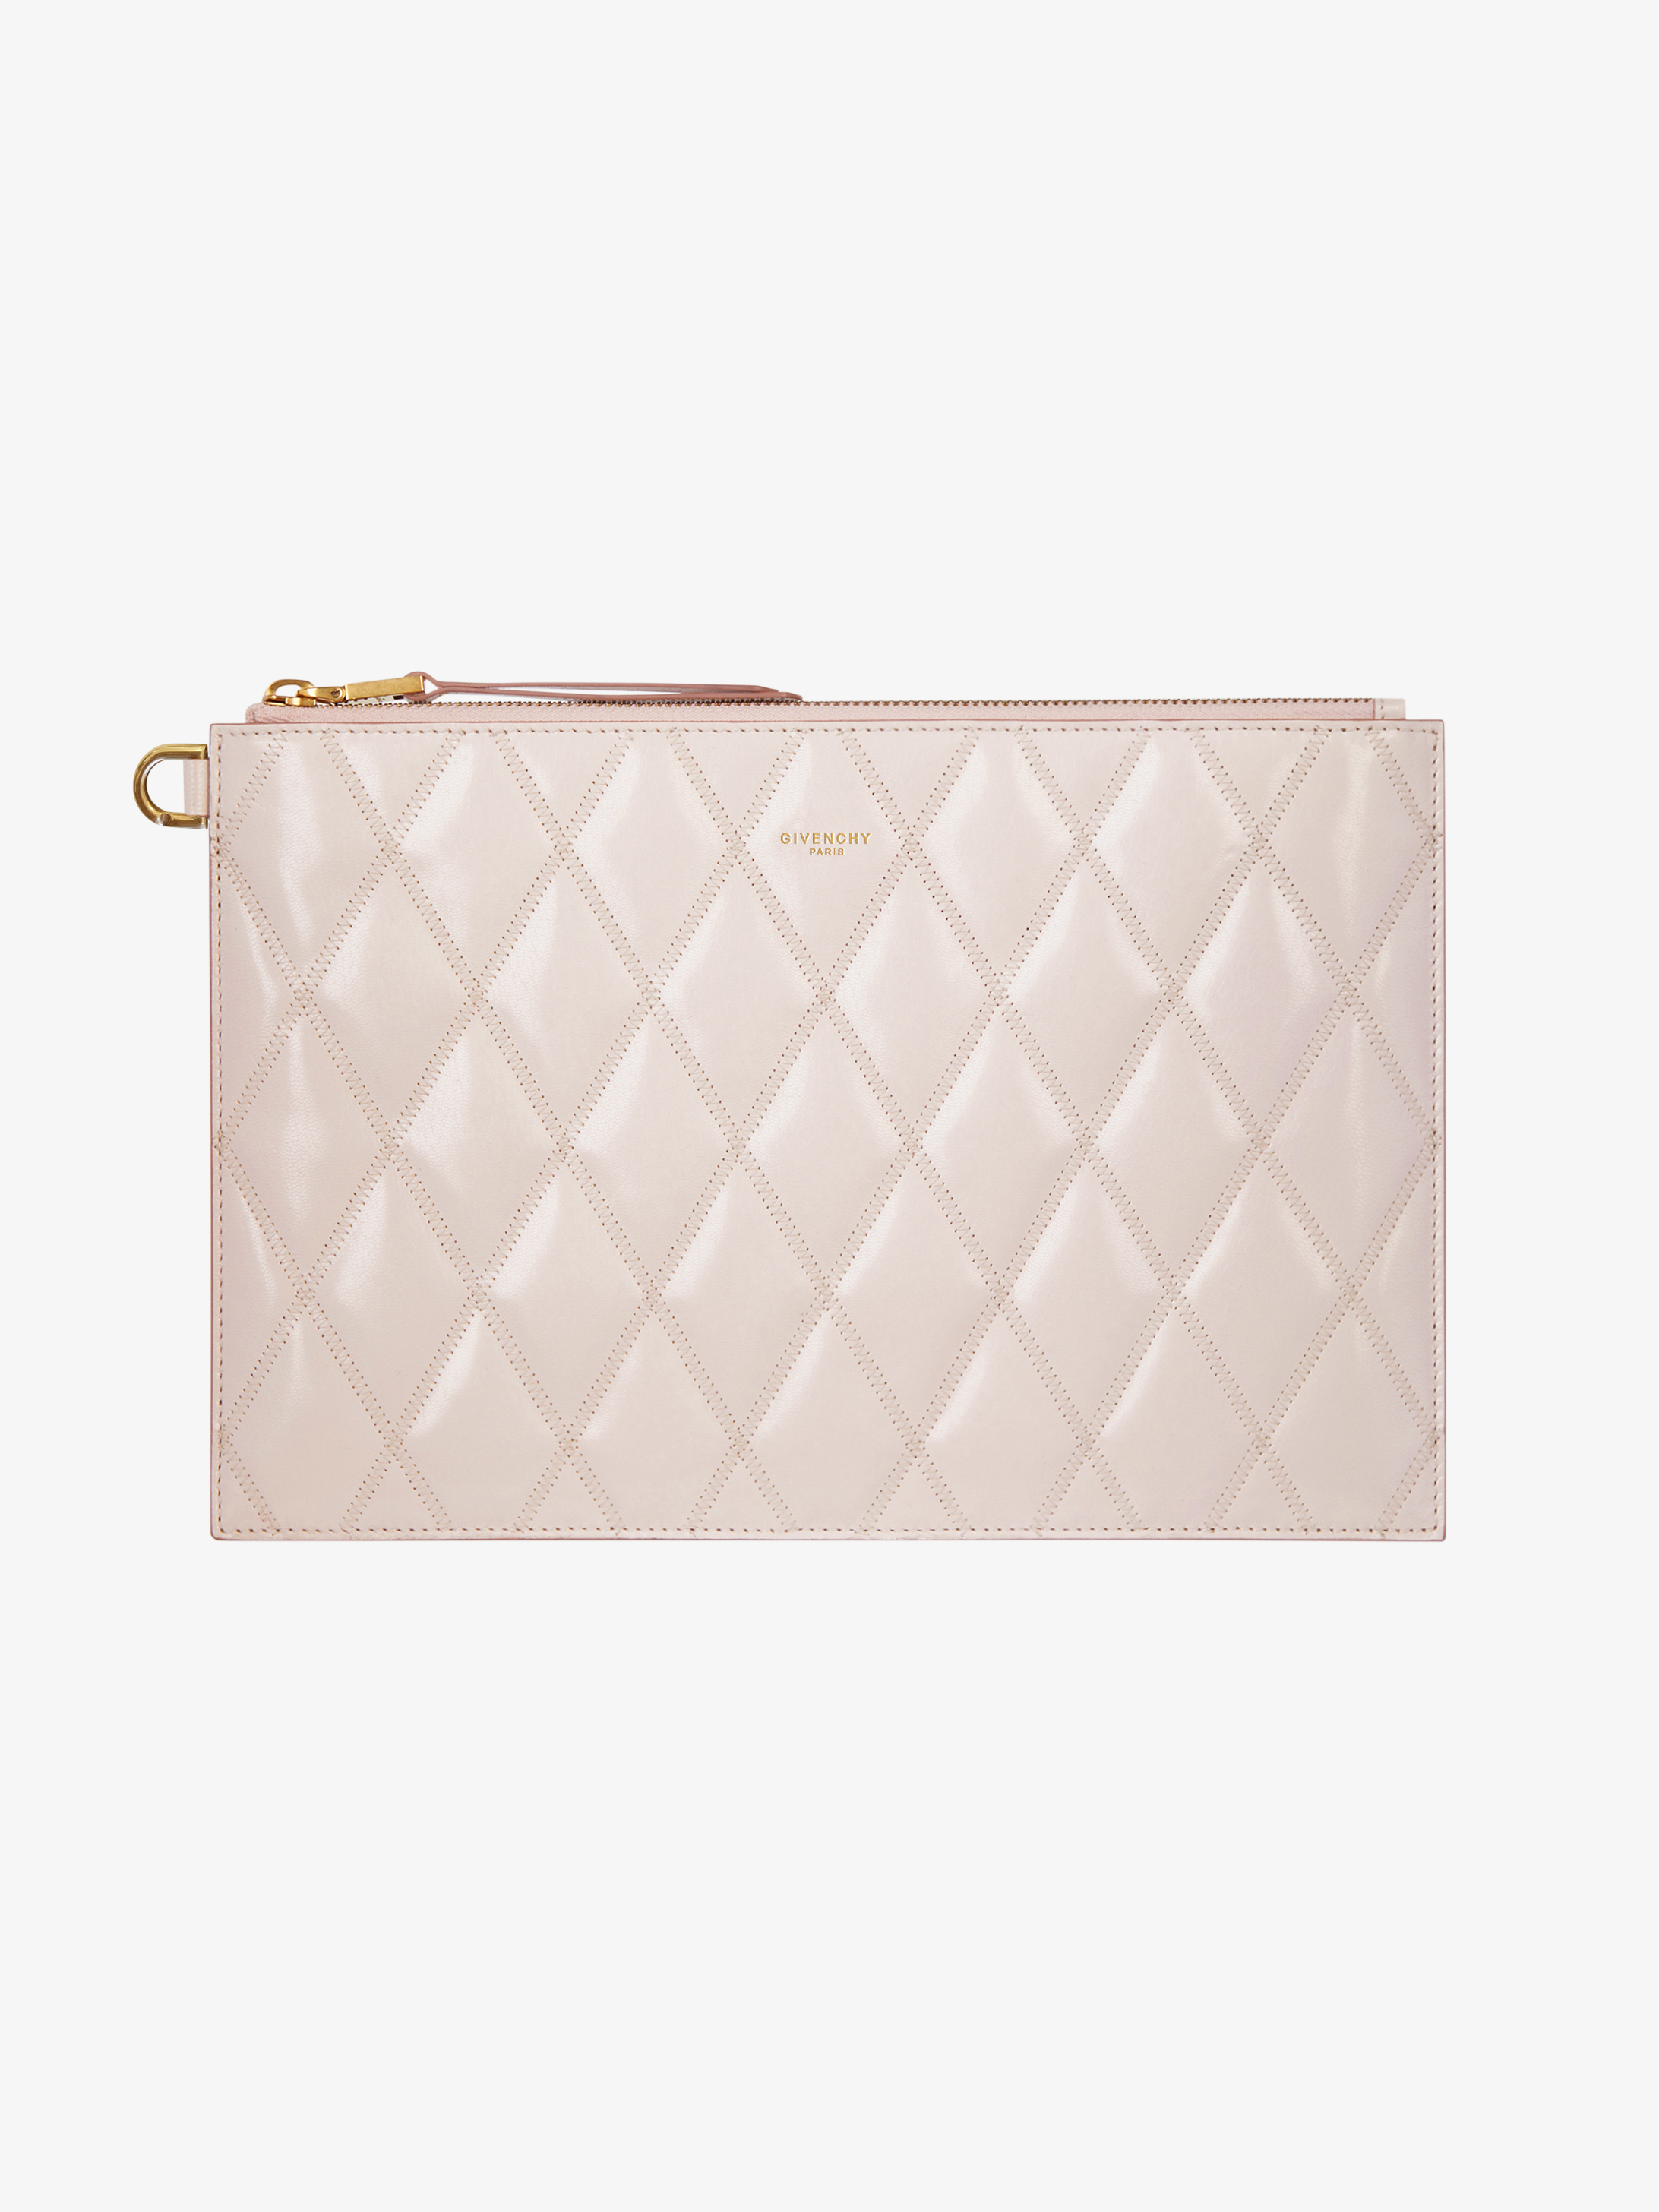 Medium pouch in diamond quilted leather